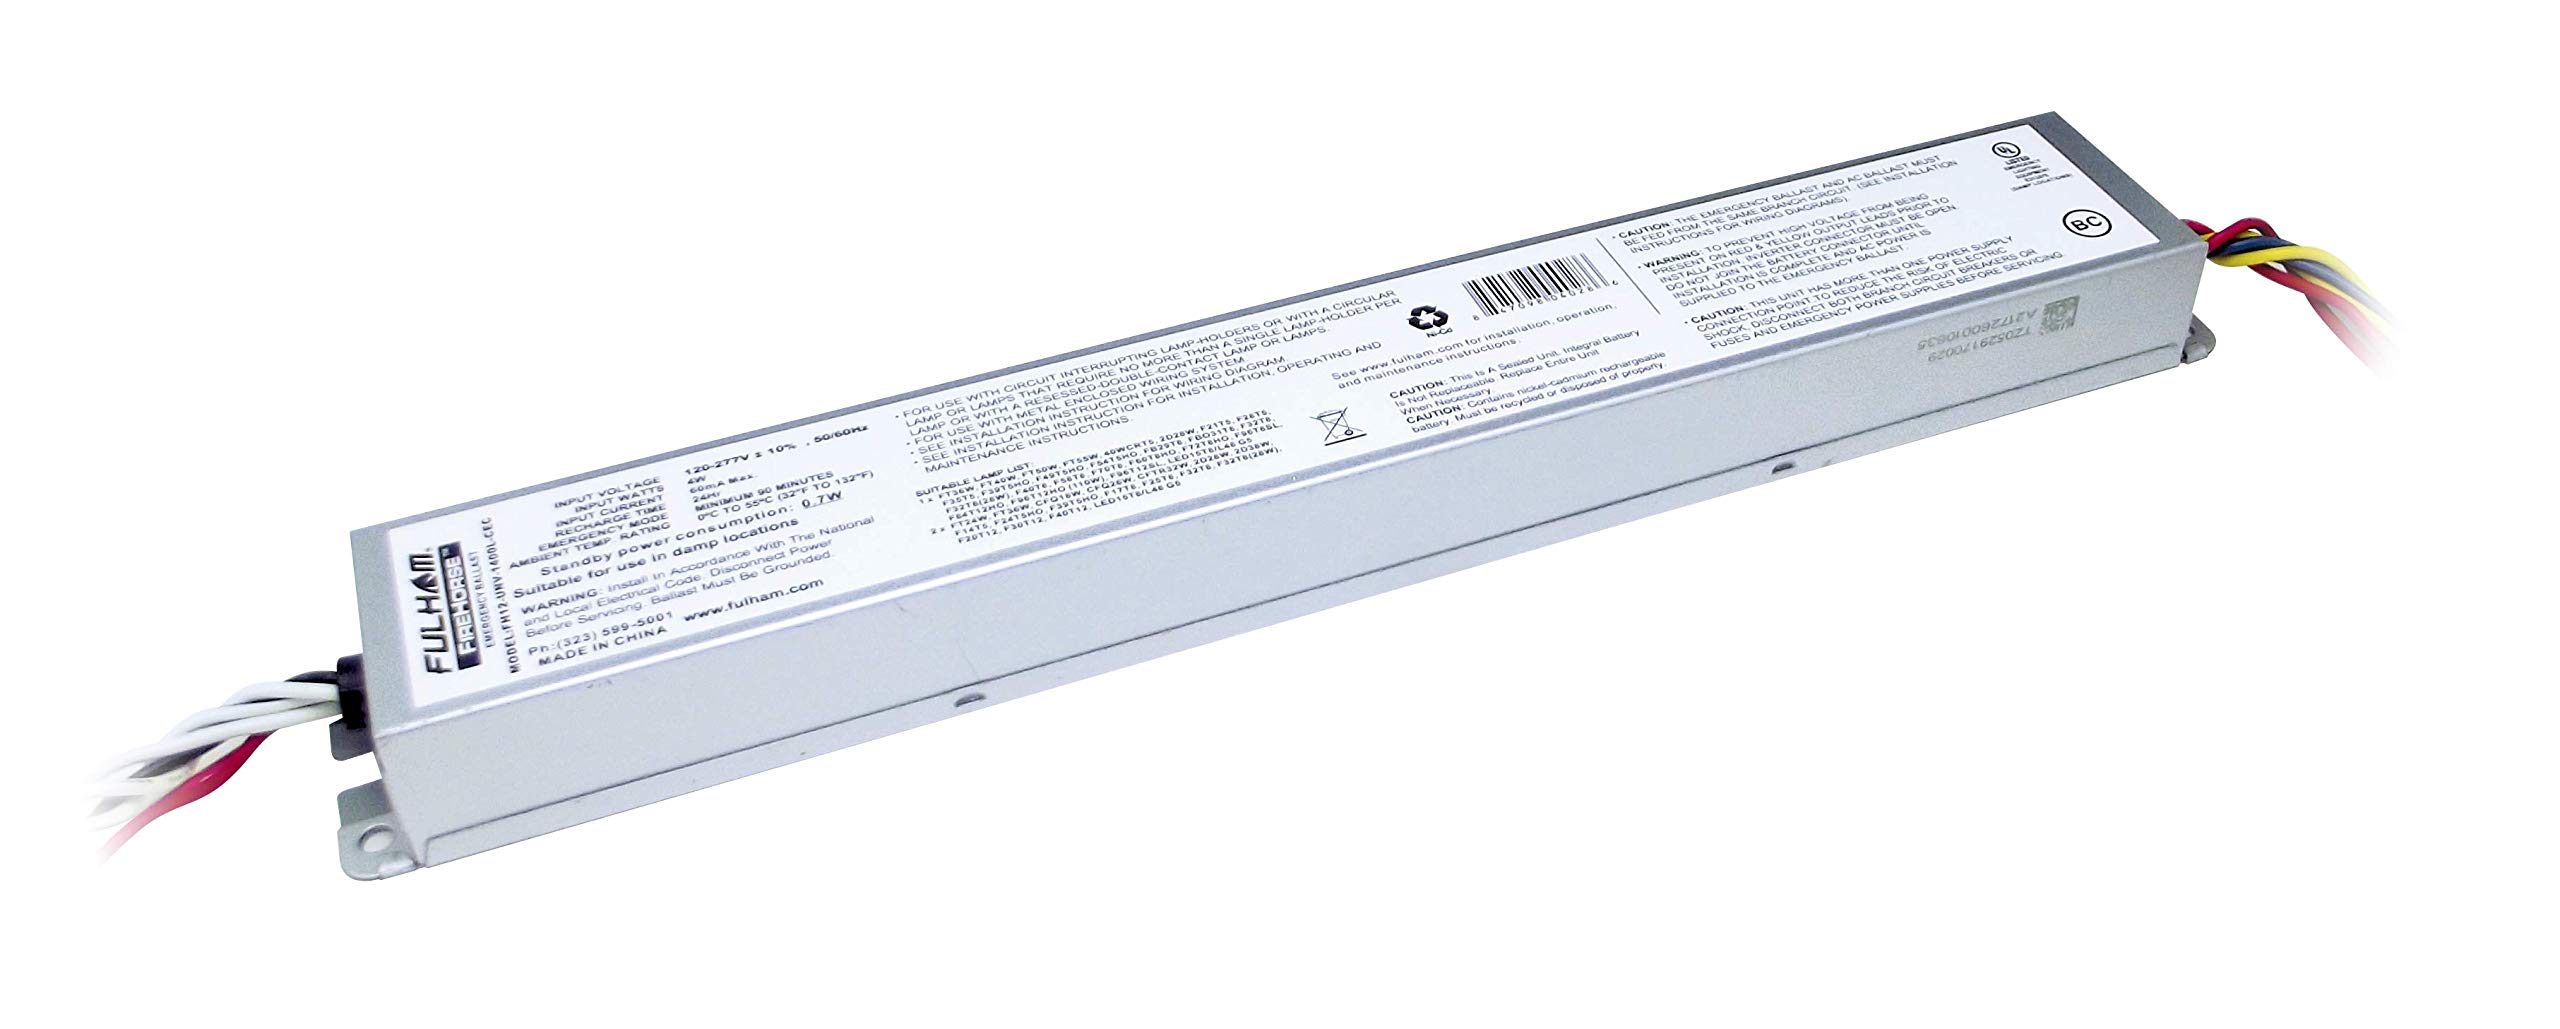 Fulham Lighting FH12-UNV-1400L-CEC FireHorse 12-Emergency Ballast-Universal Voltage-1400 Initial Lumen Output